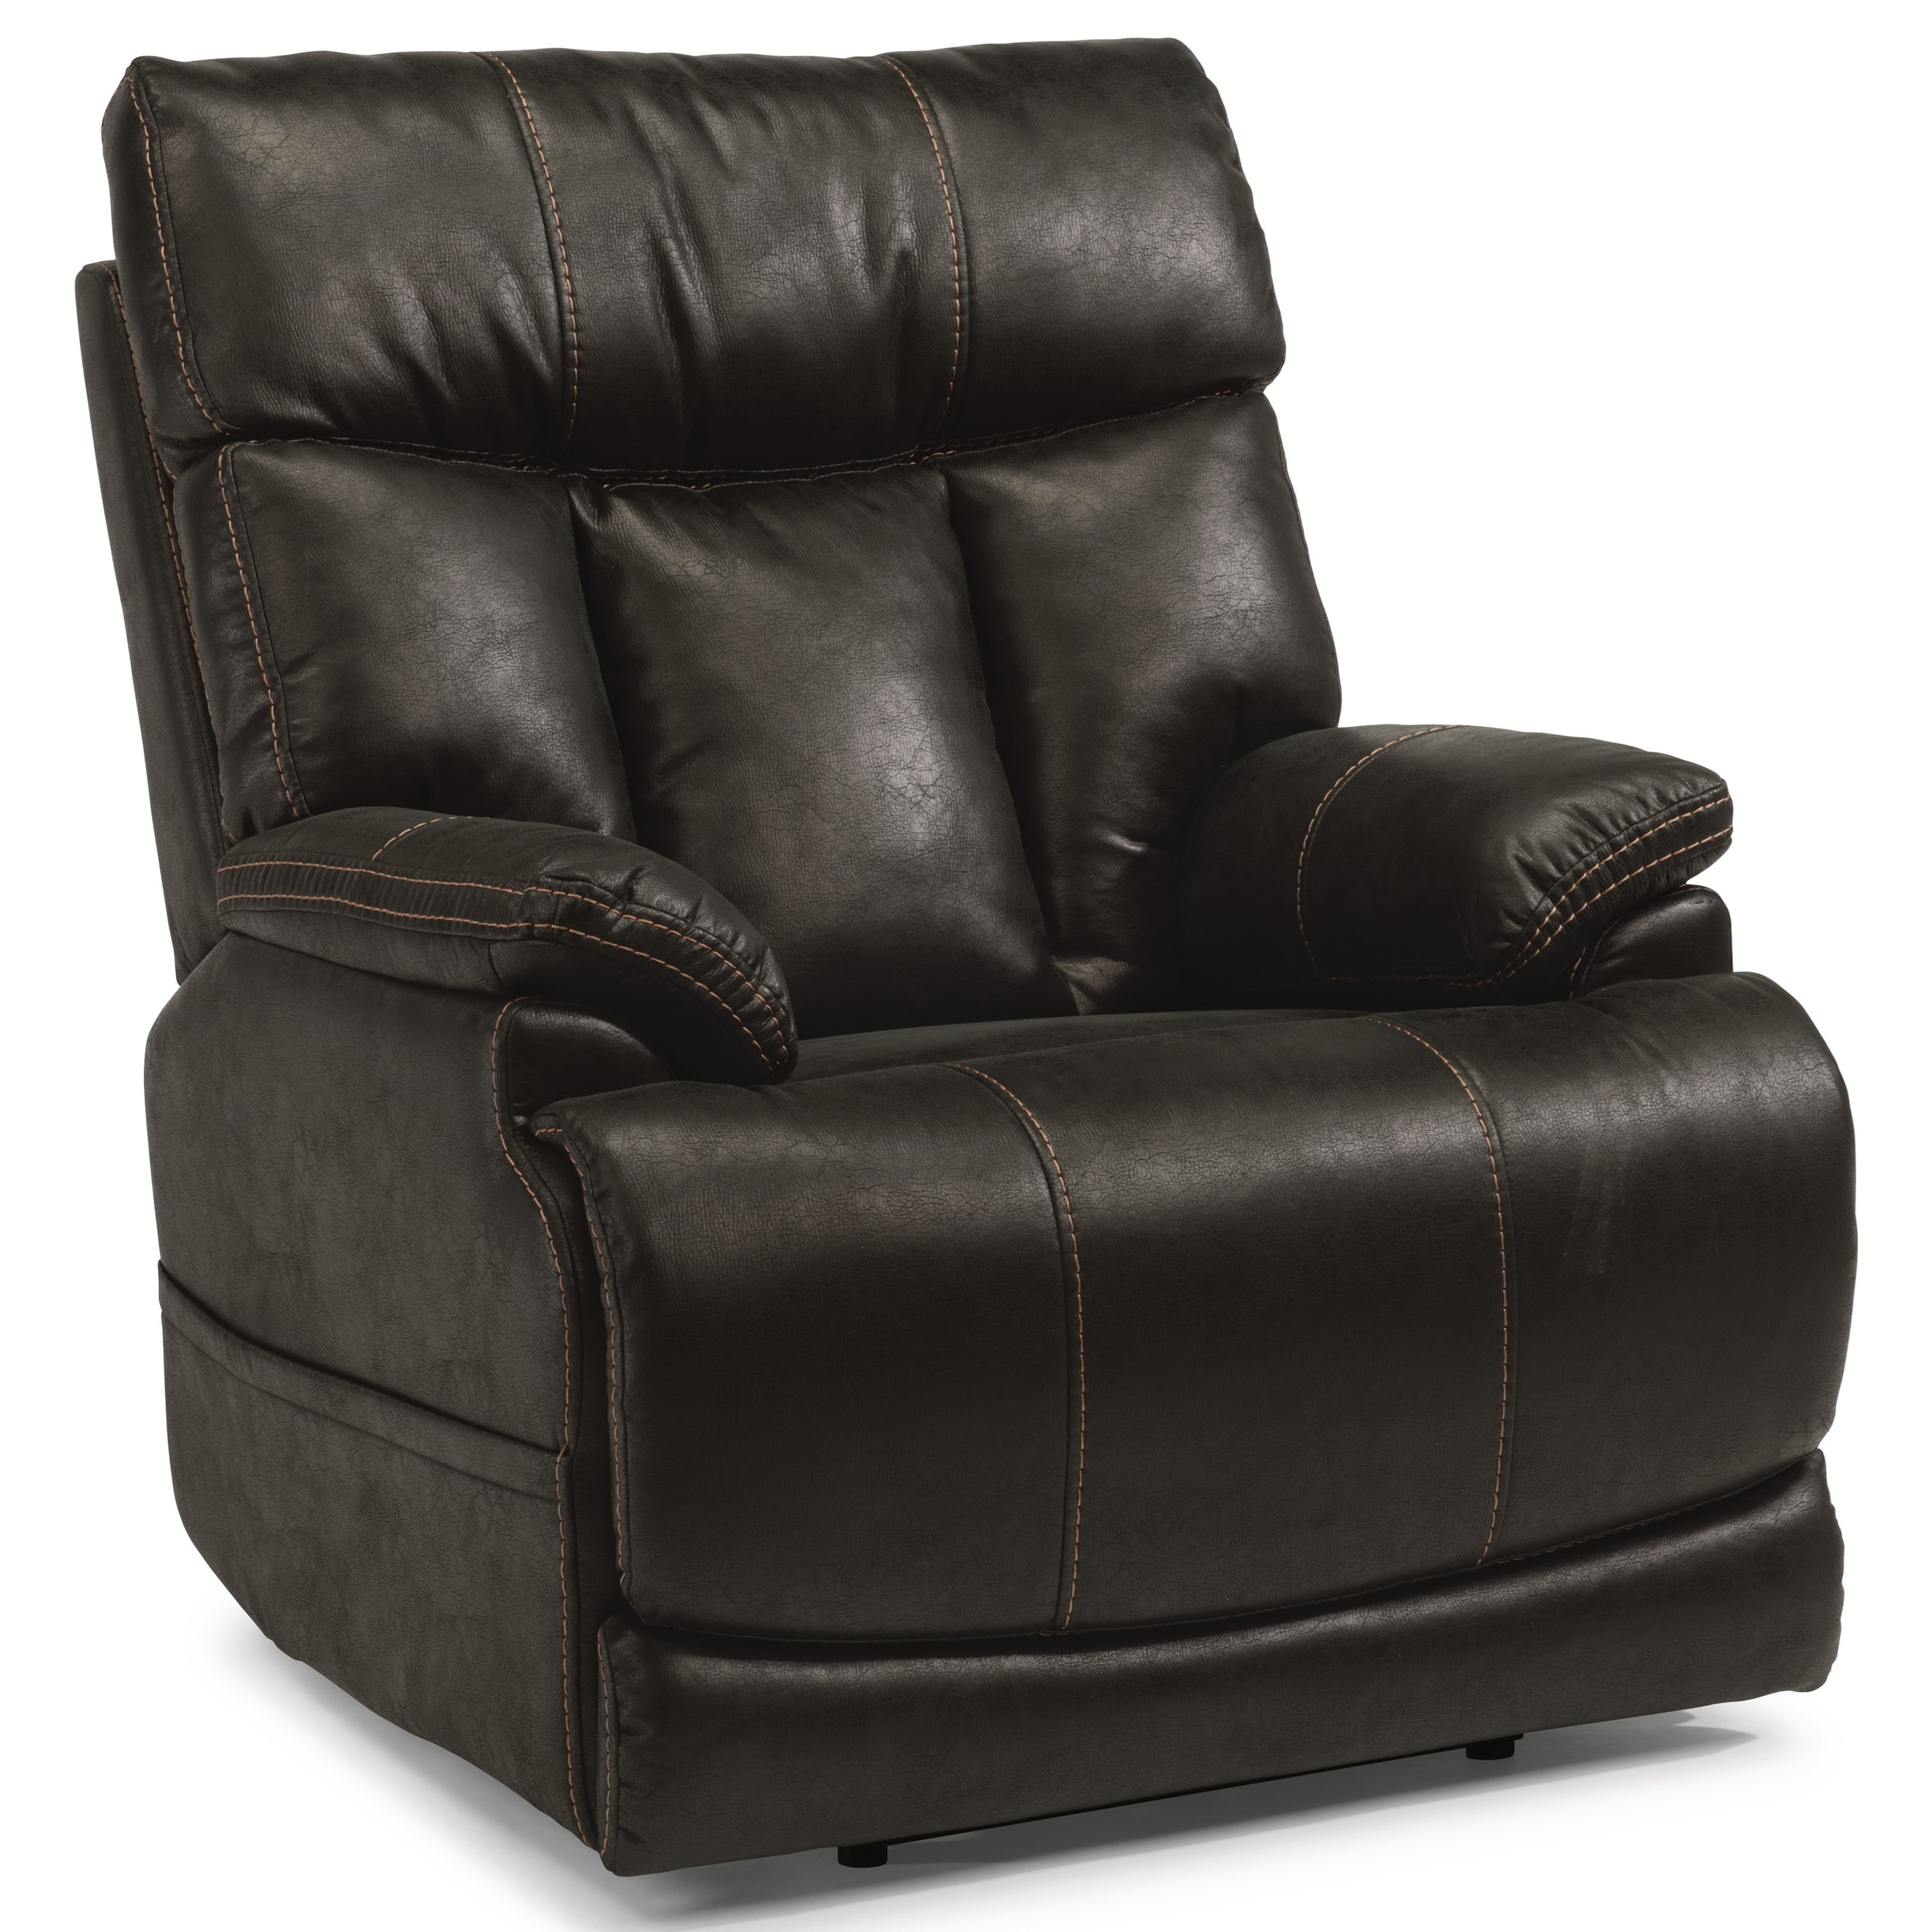 Latitudes-Clive Power Recliner with Power Headrest by Flexsteel at Factory Direct Furniture